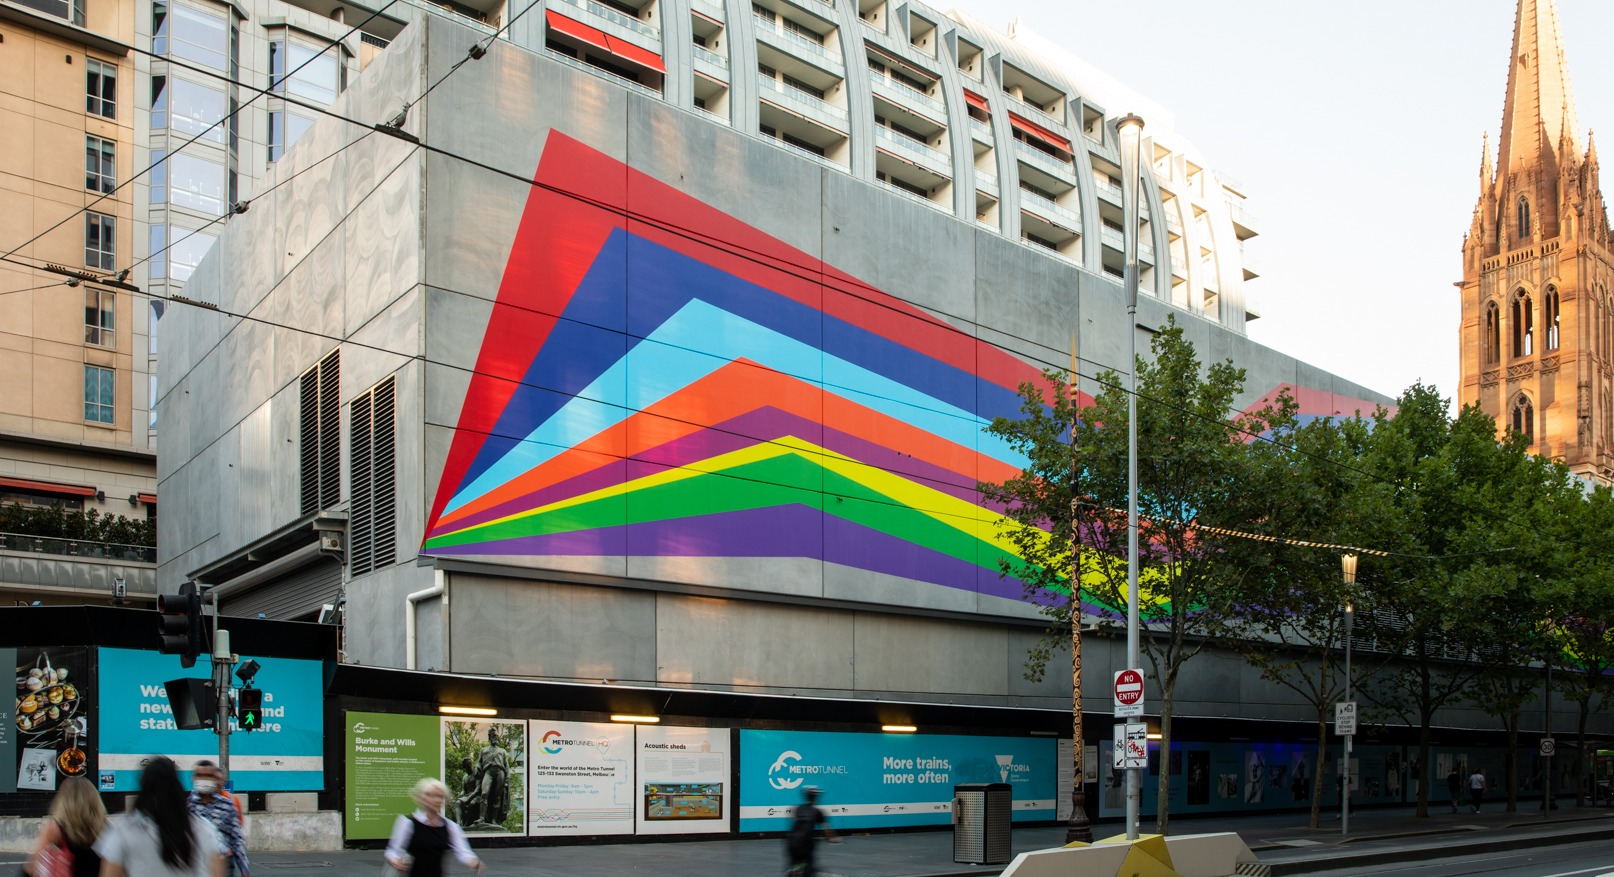 A large concrete shed on next to a busy road with a colourful artwork on the side